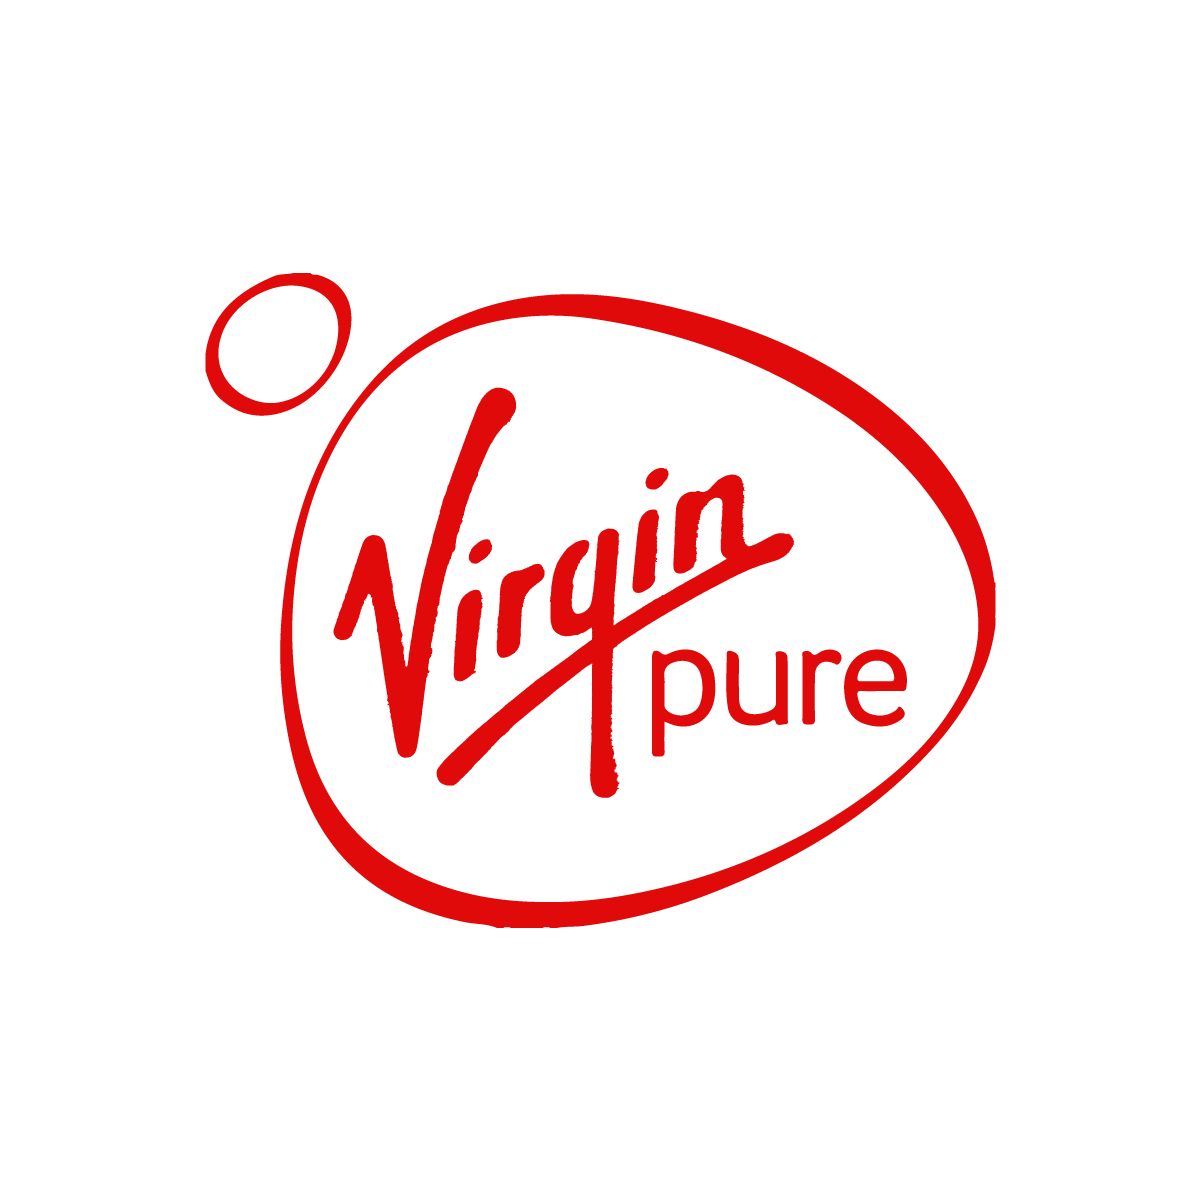 Virgin Pure logo